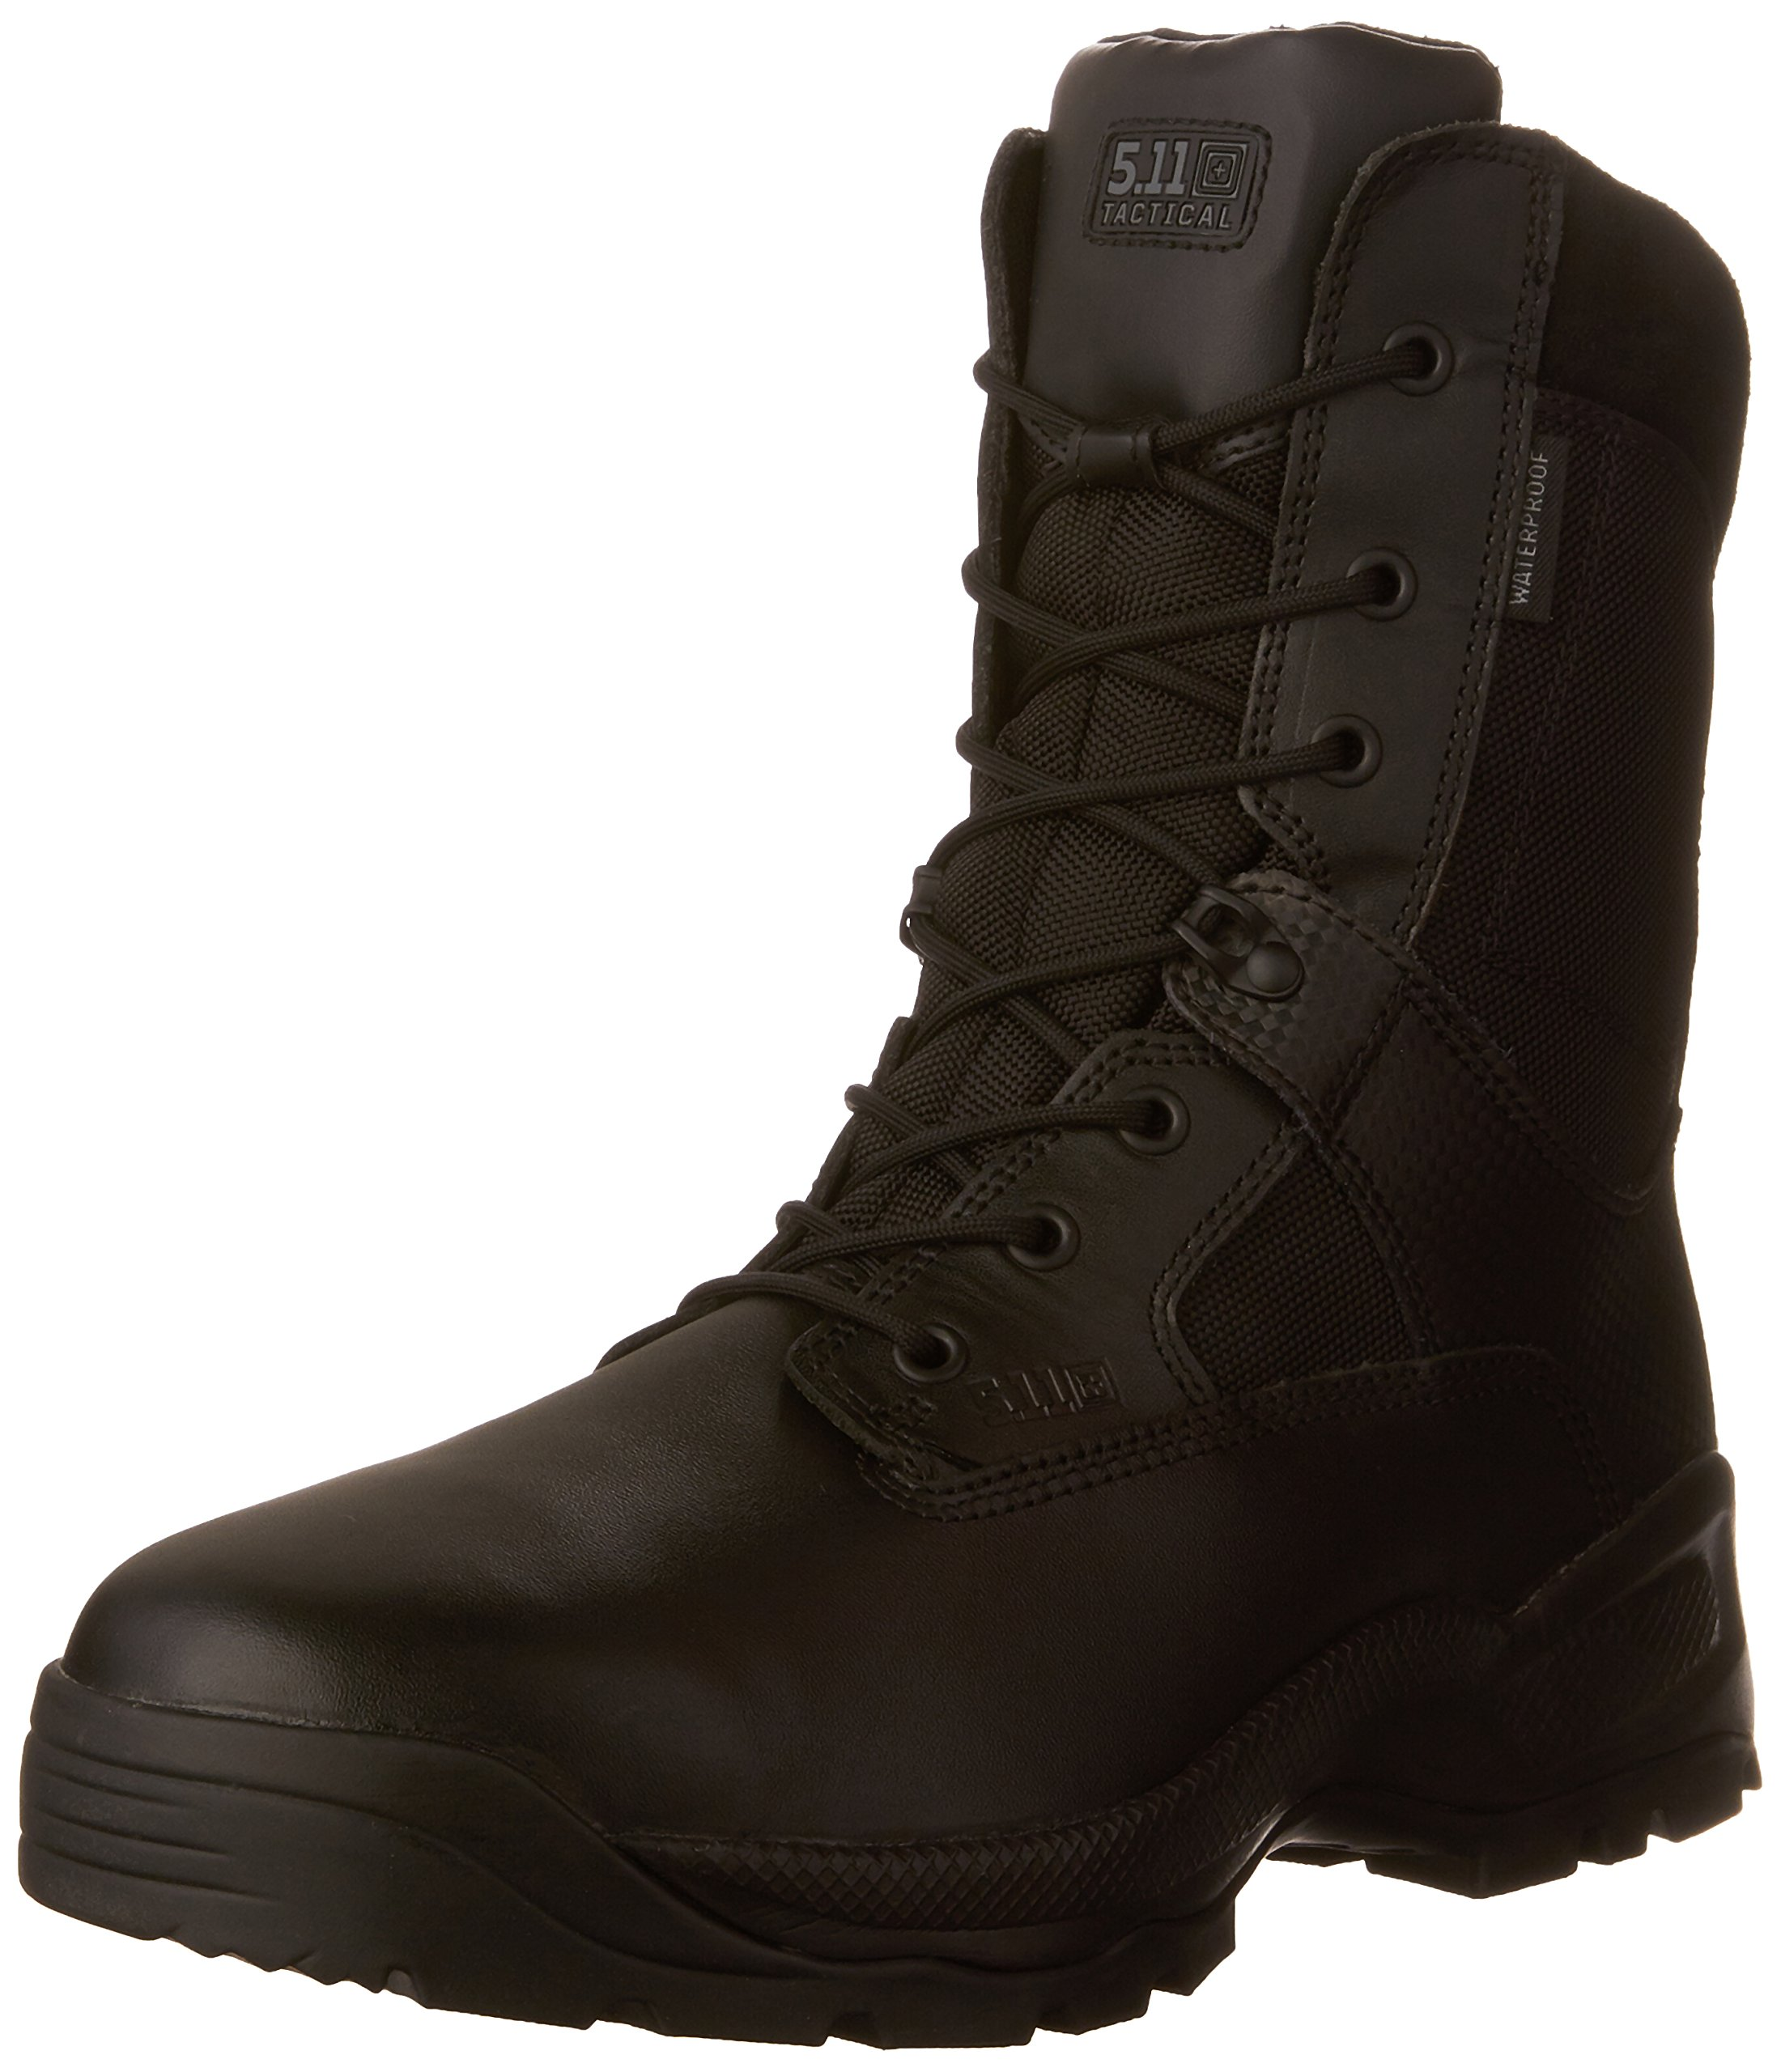 5.11 Men's ATAC Storm 8In Boot-U, Black, 12 2E US by 5.11